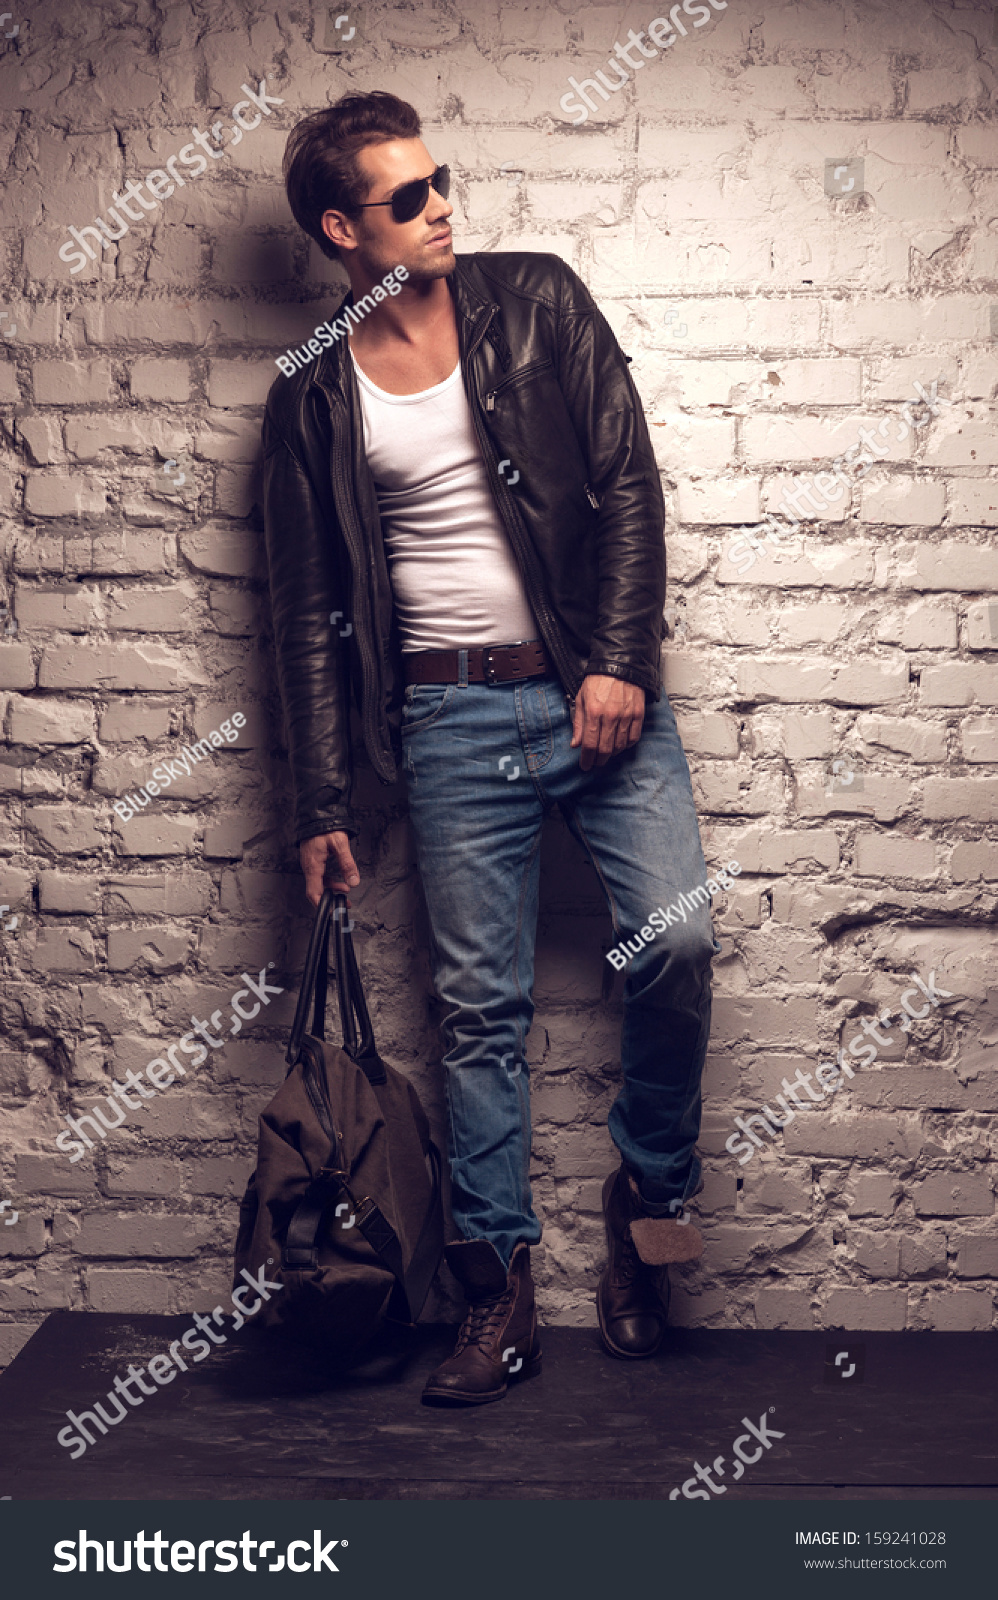 Leather jacket photoshoot - Standing In Black Leather Jacket And Jeans